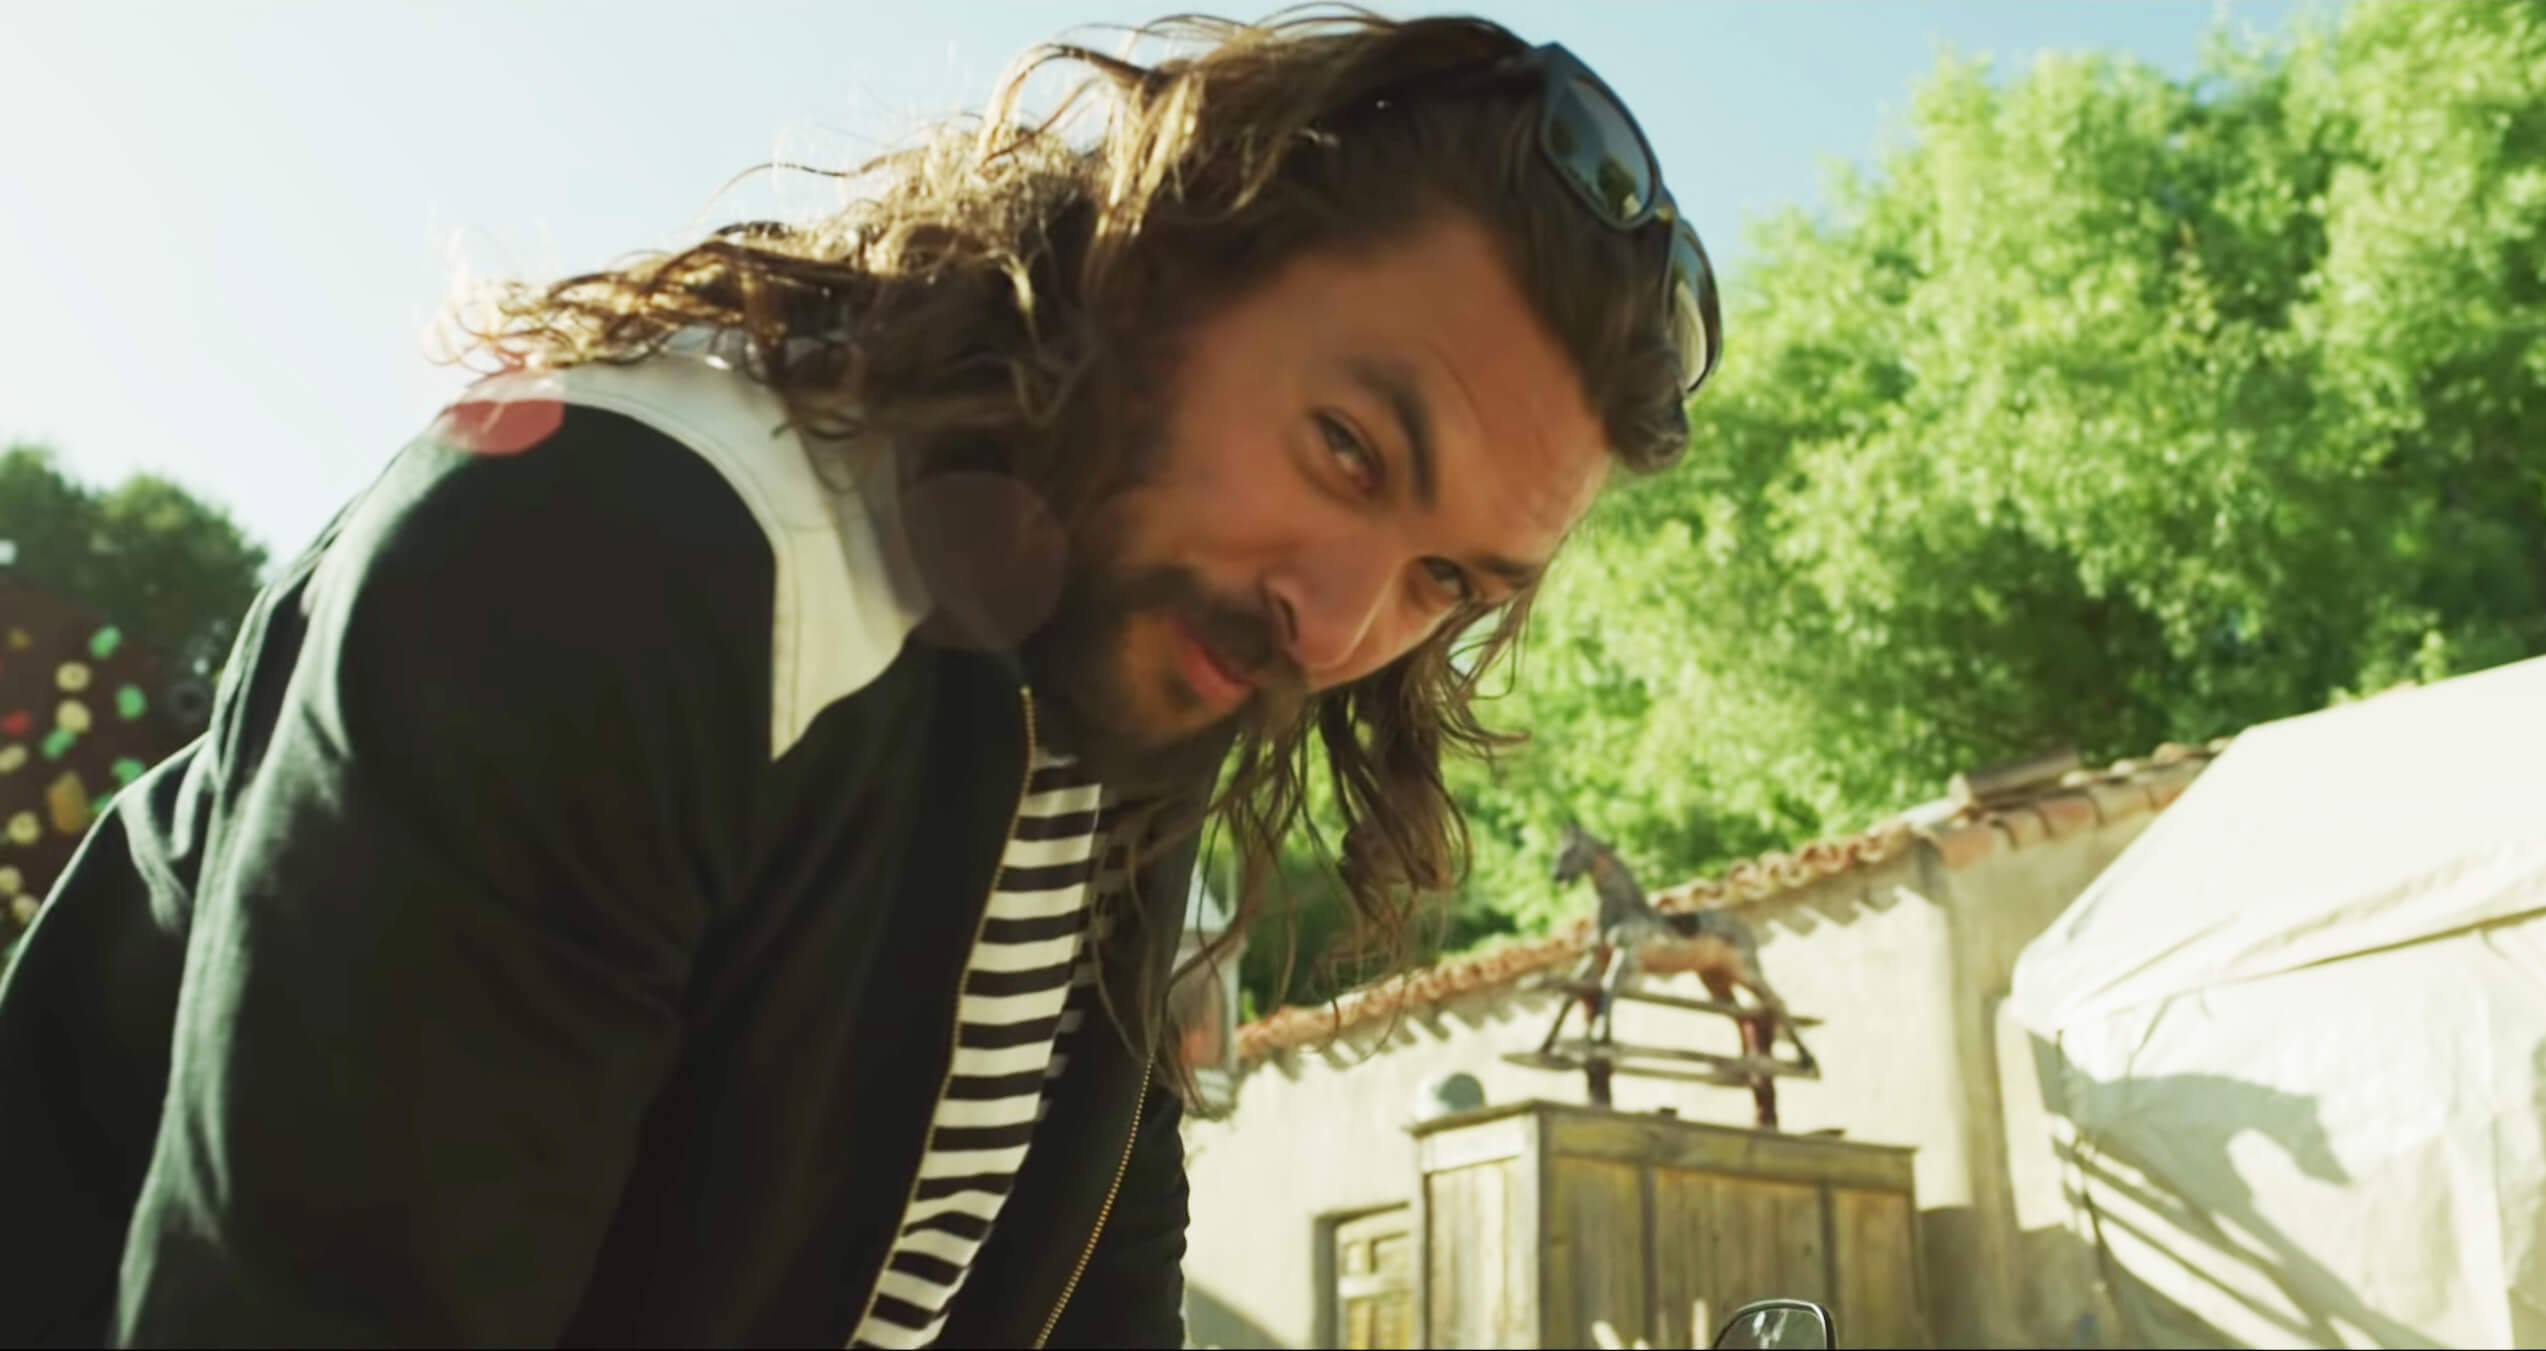 As older riders begin to retire from the road, Harley Davidson partnered with TMA and Jason Momoa to welcome young riders to the iconic brand.